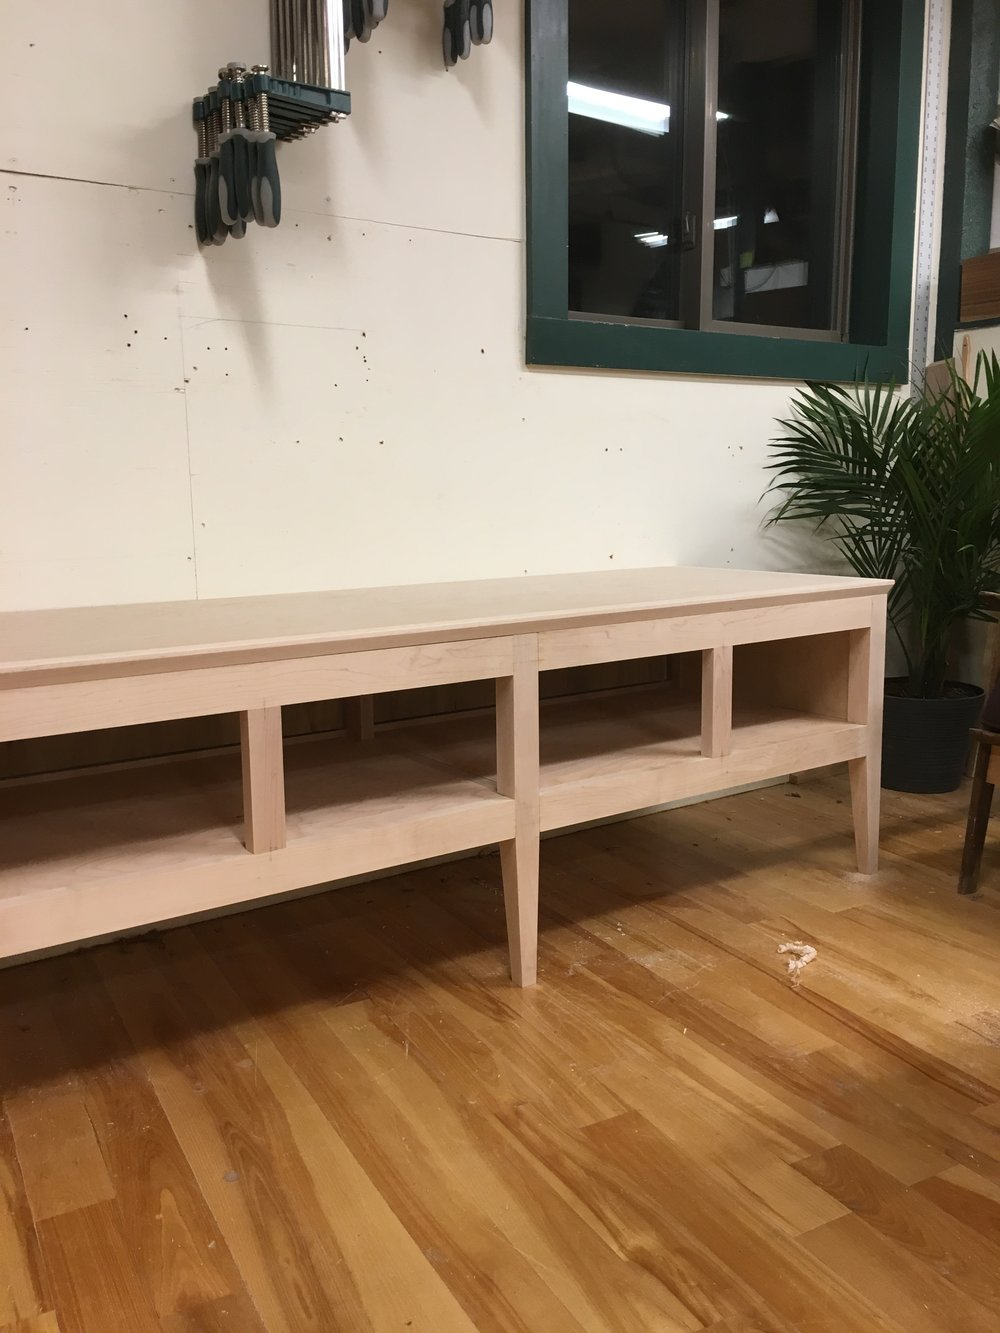 Hone Design Co._Dorchester Bench 6